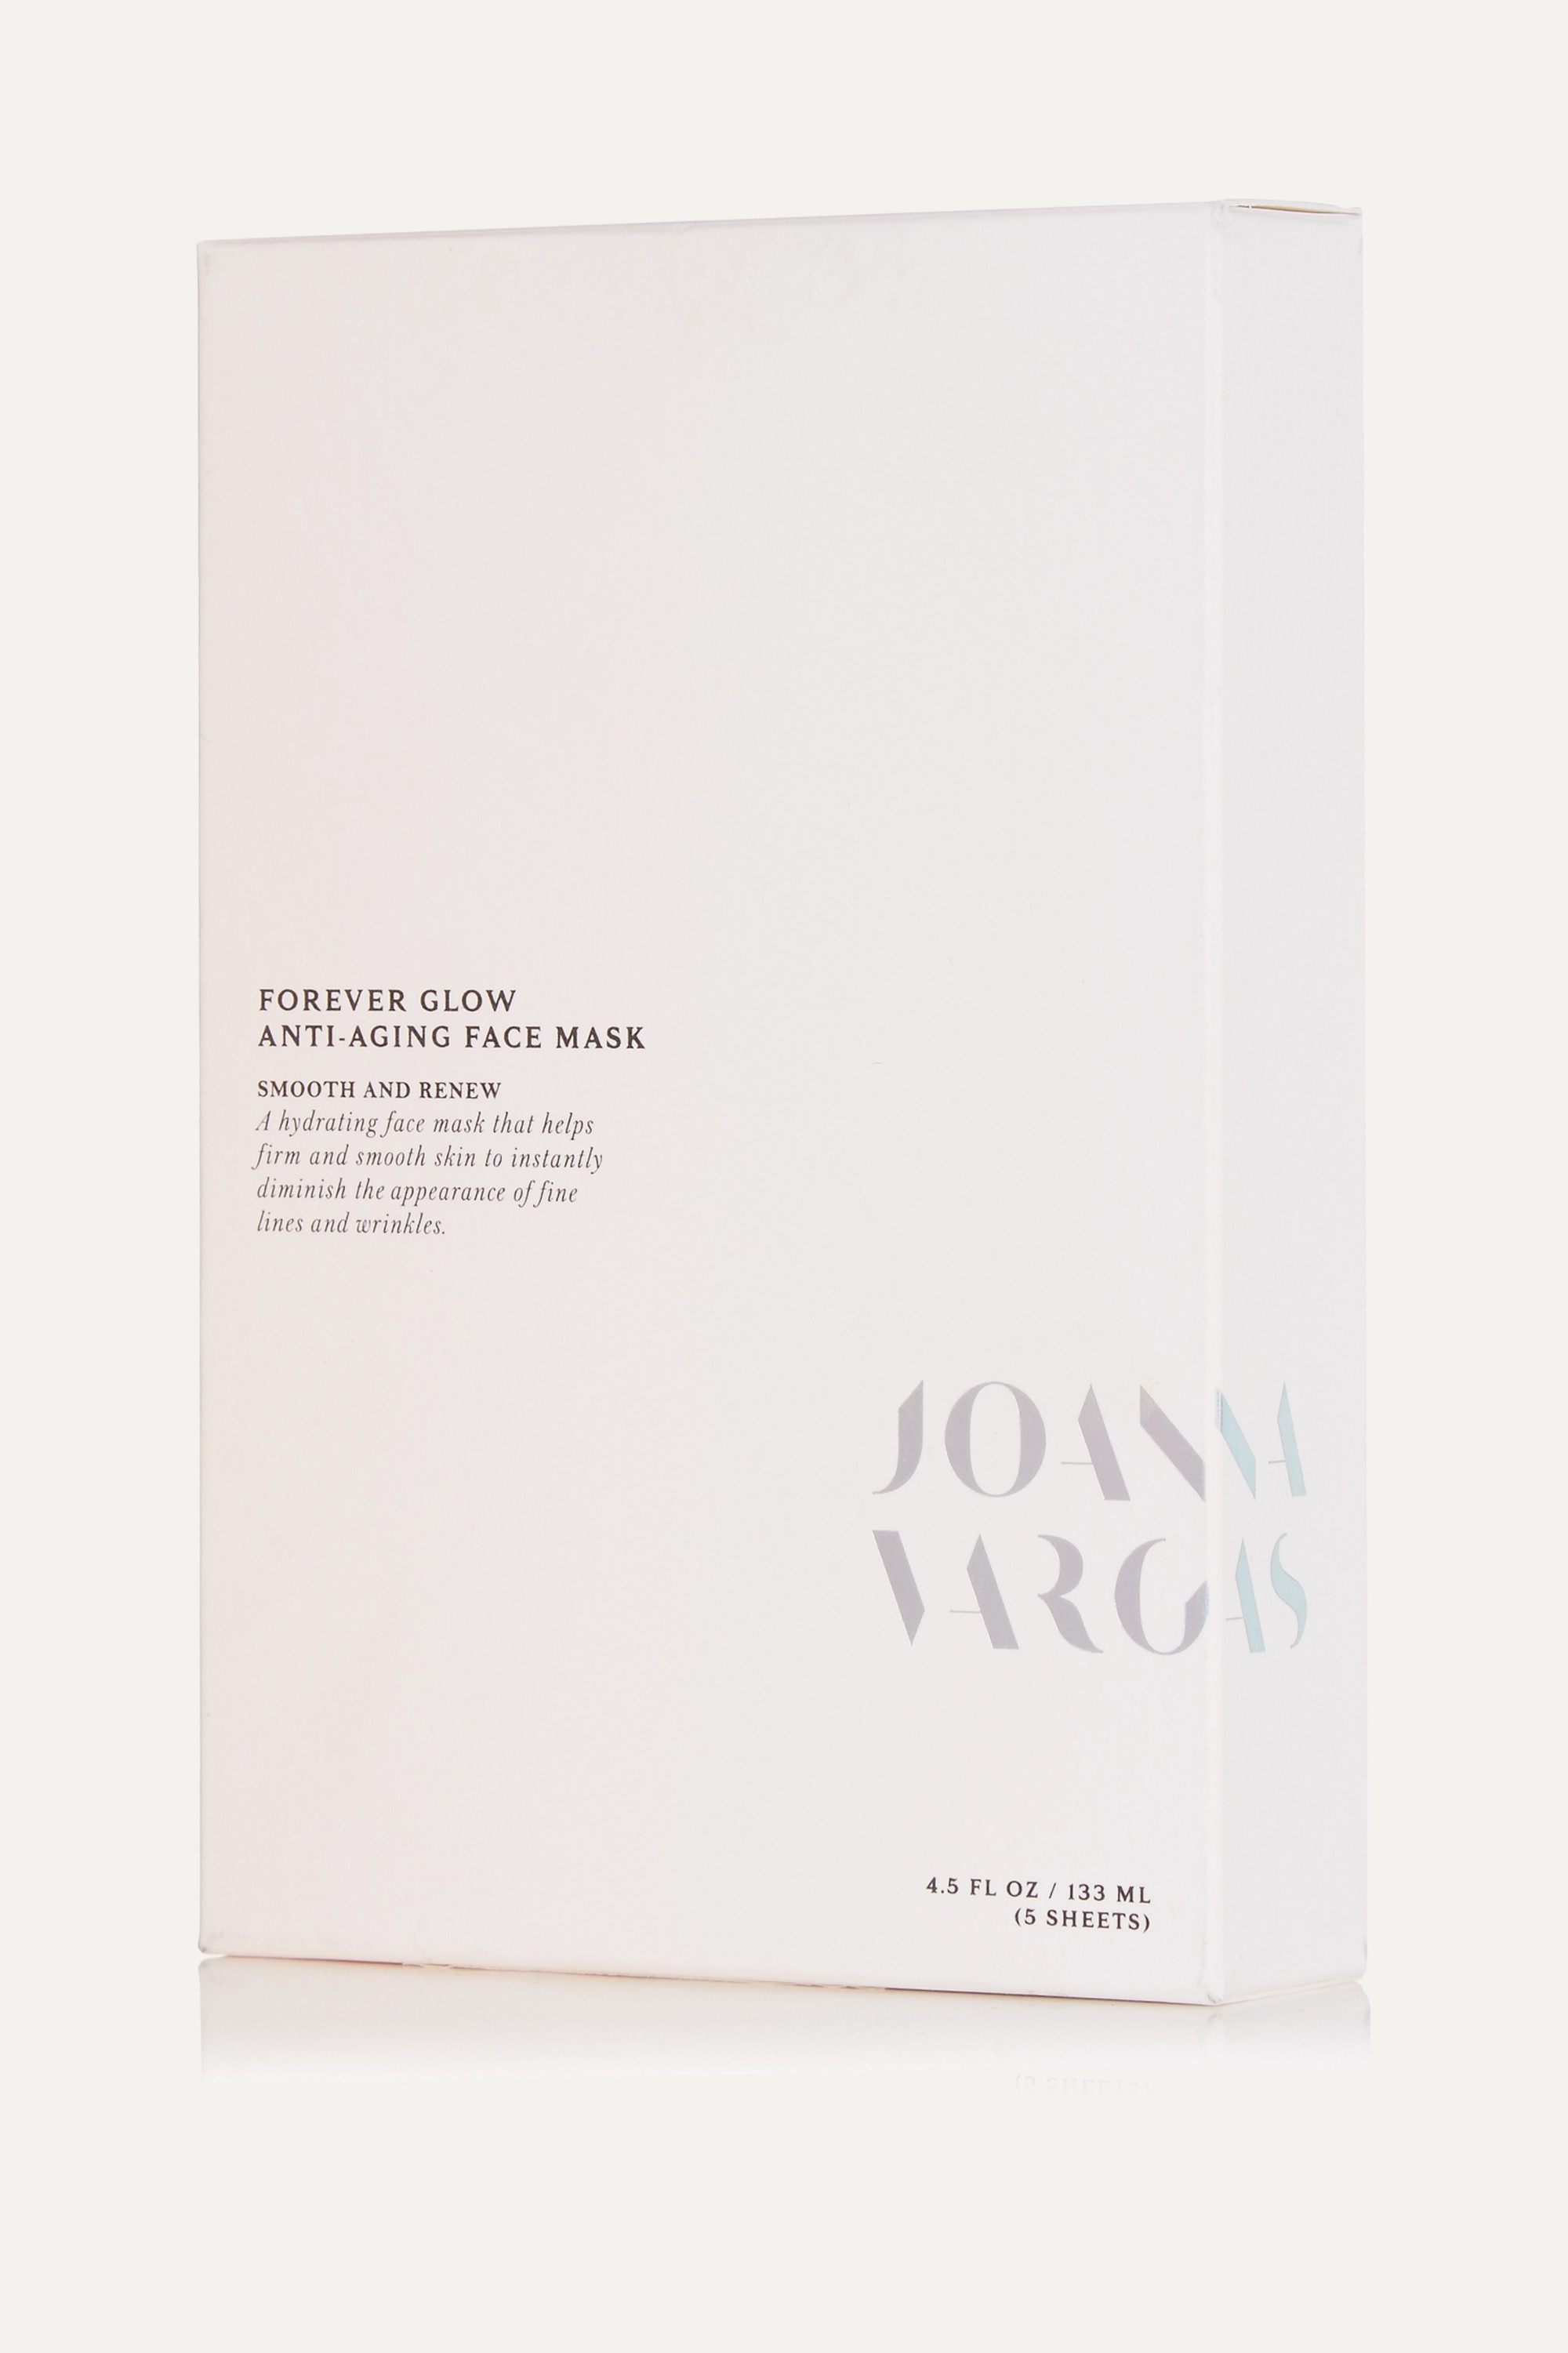 Joanna Vargas Forever Glow Anti-Aging Face Mask x 5